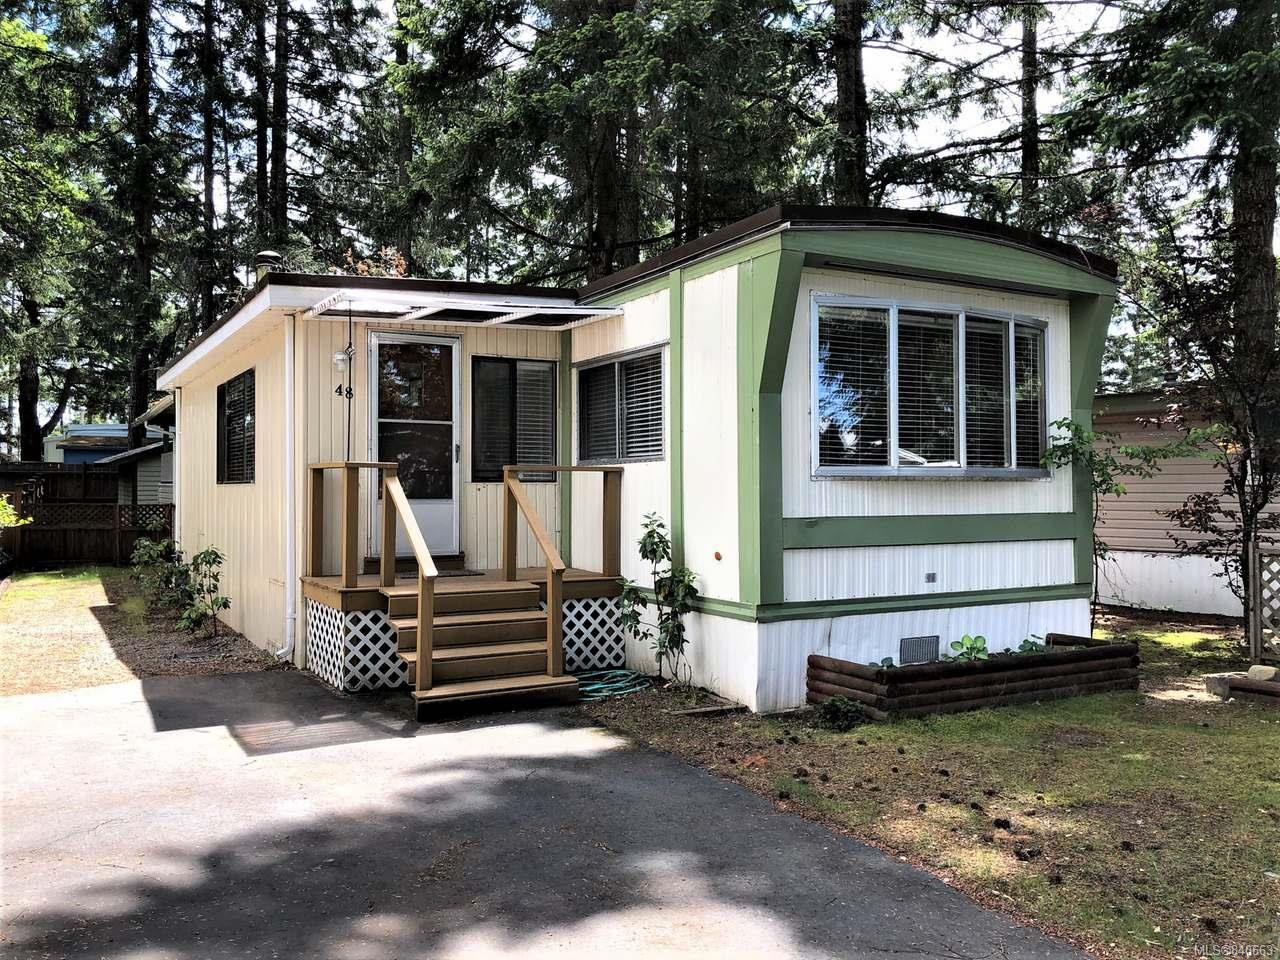 Main Photo: 48 1247 Arbutus Rd in PARKSVILLE: PQ Parksville Manufactured Home for sale (Parksville/Qualicum)  : MLS®# 840663